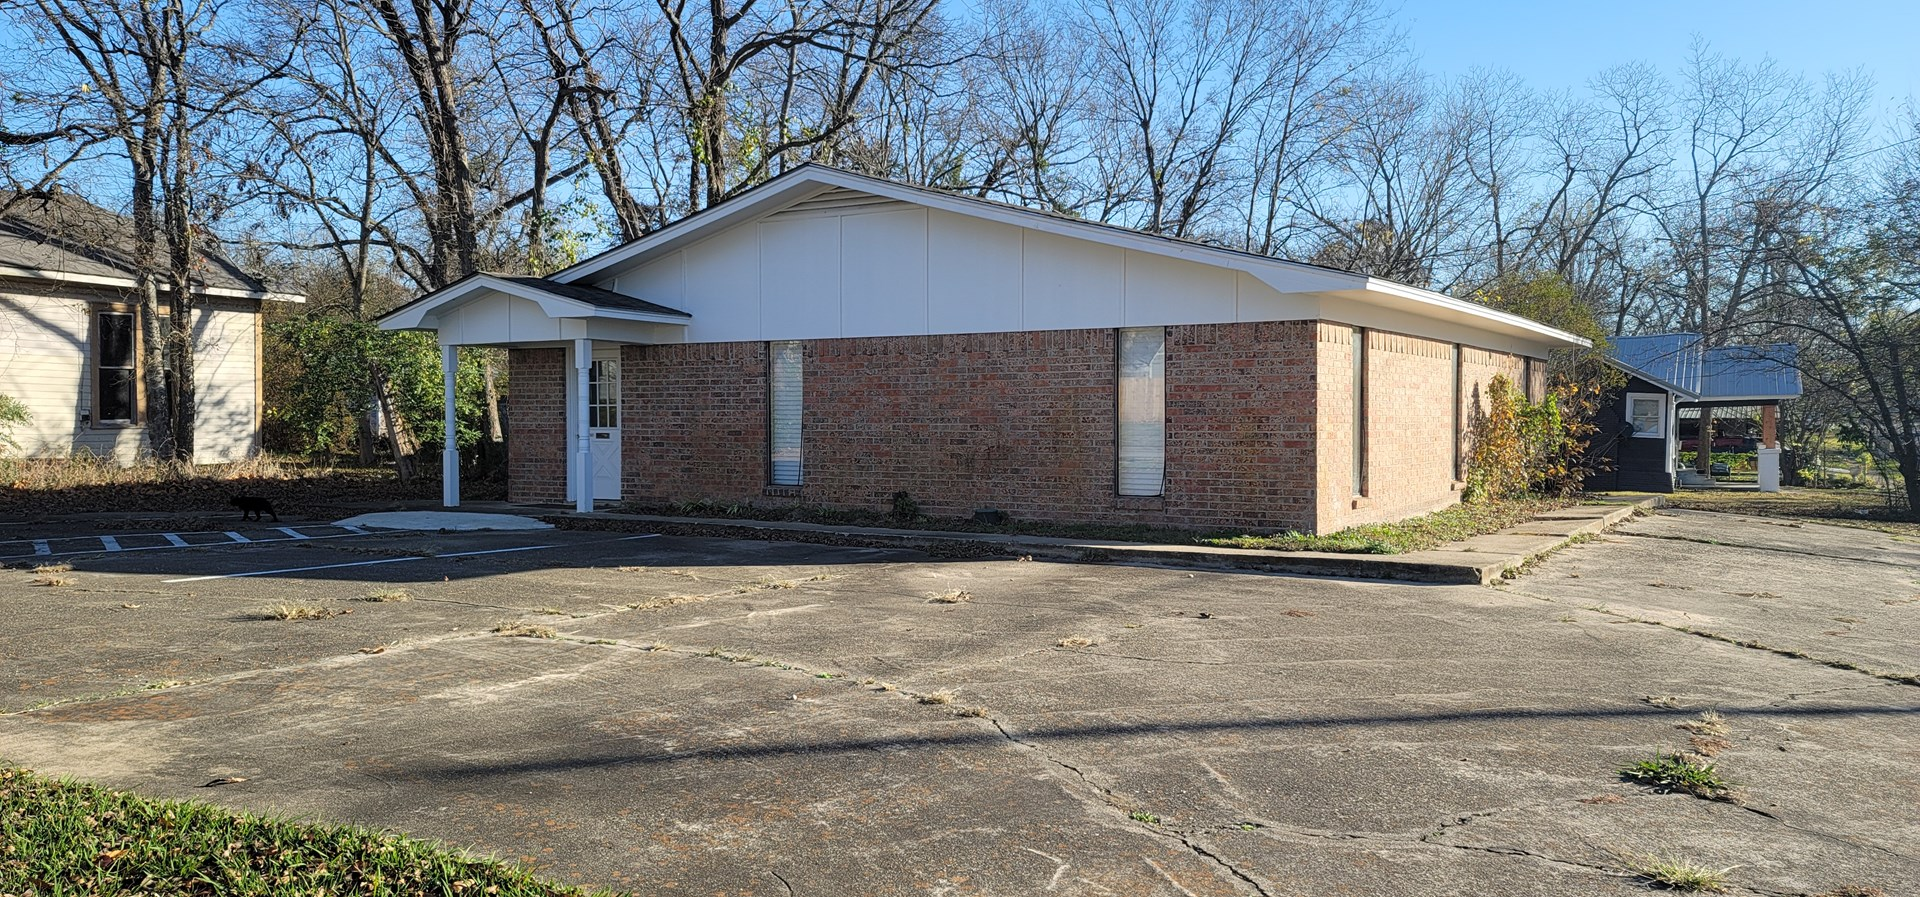 Commercial Building For Sale In Clarksville Texas